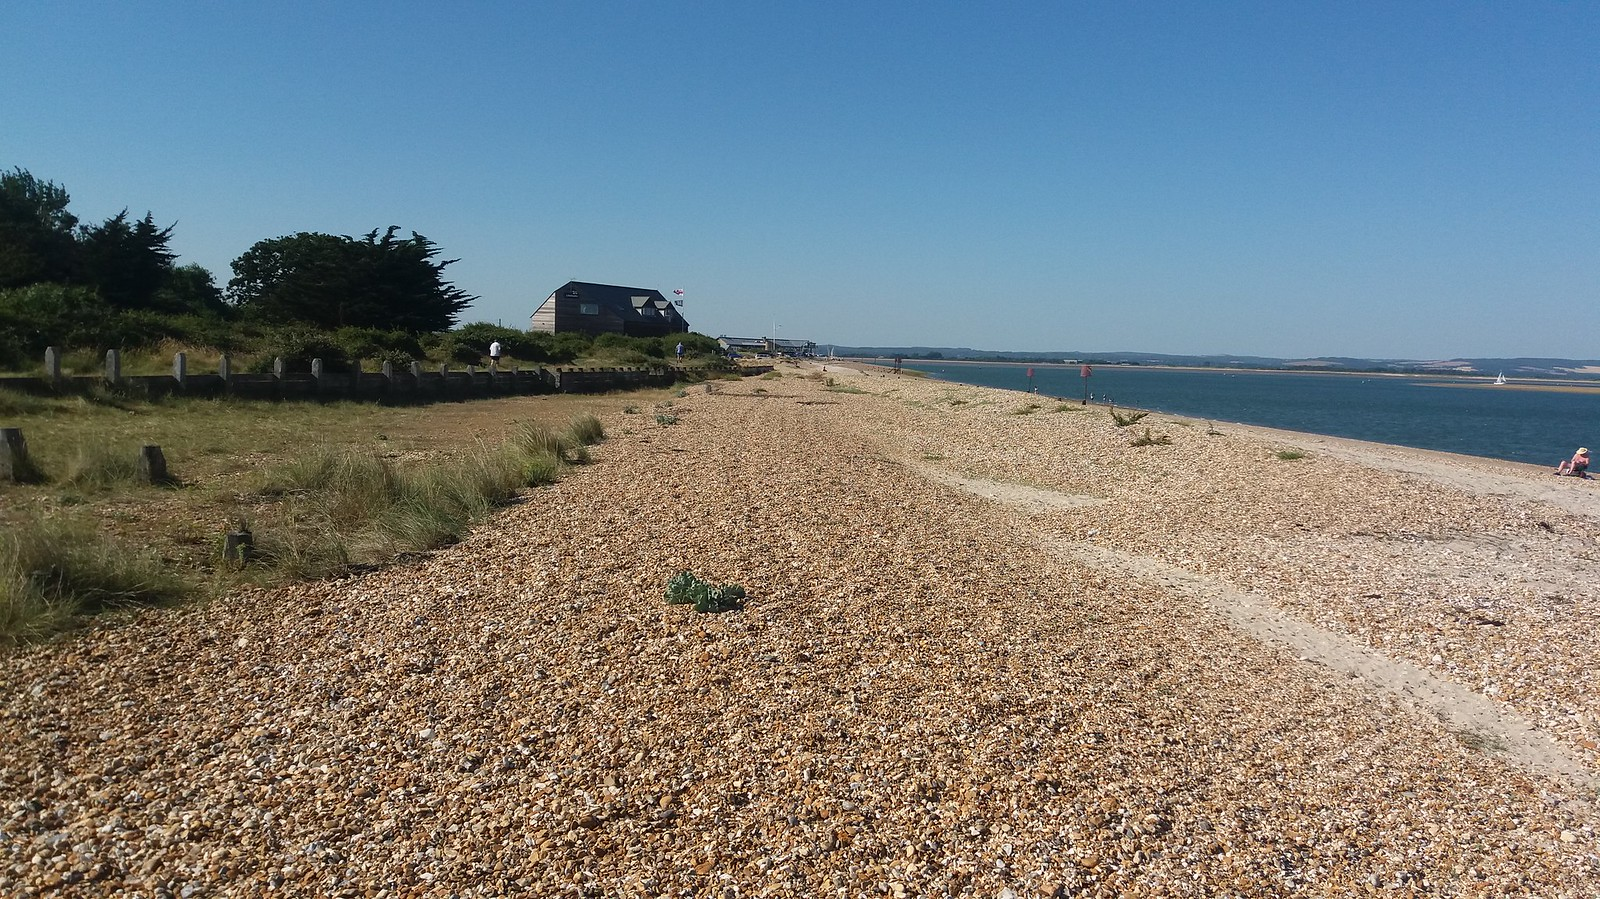 20160719_170726 Path around Sandy Point Nature Reserve towrds the RNLI station